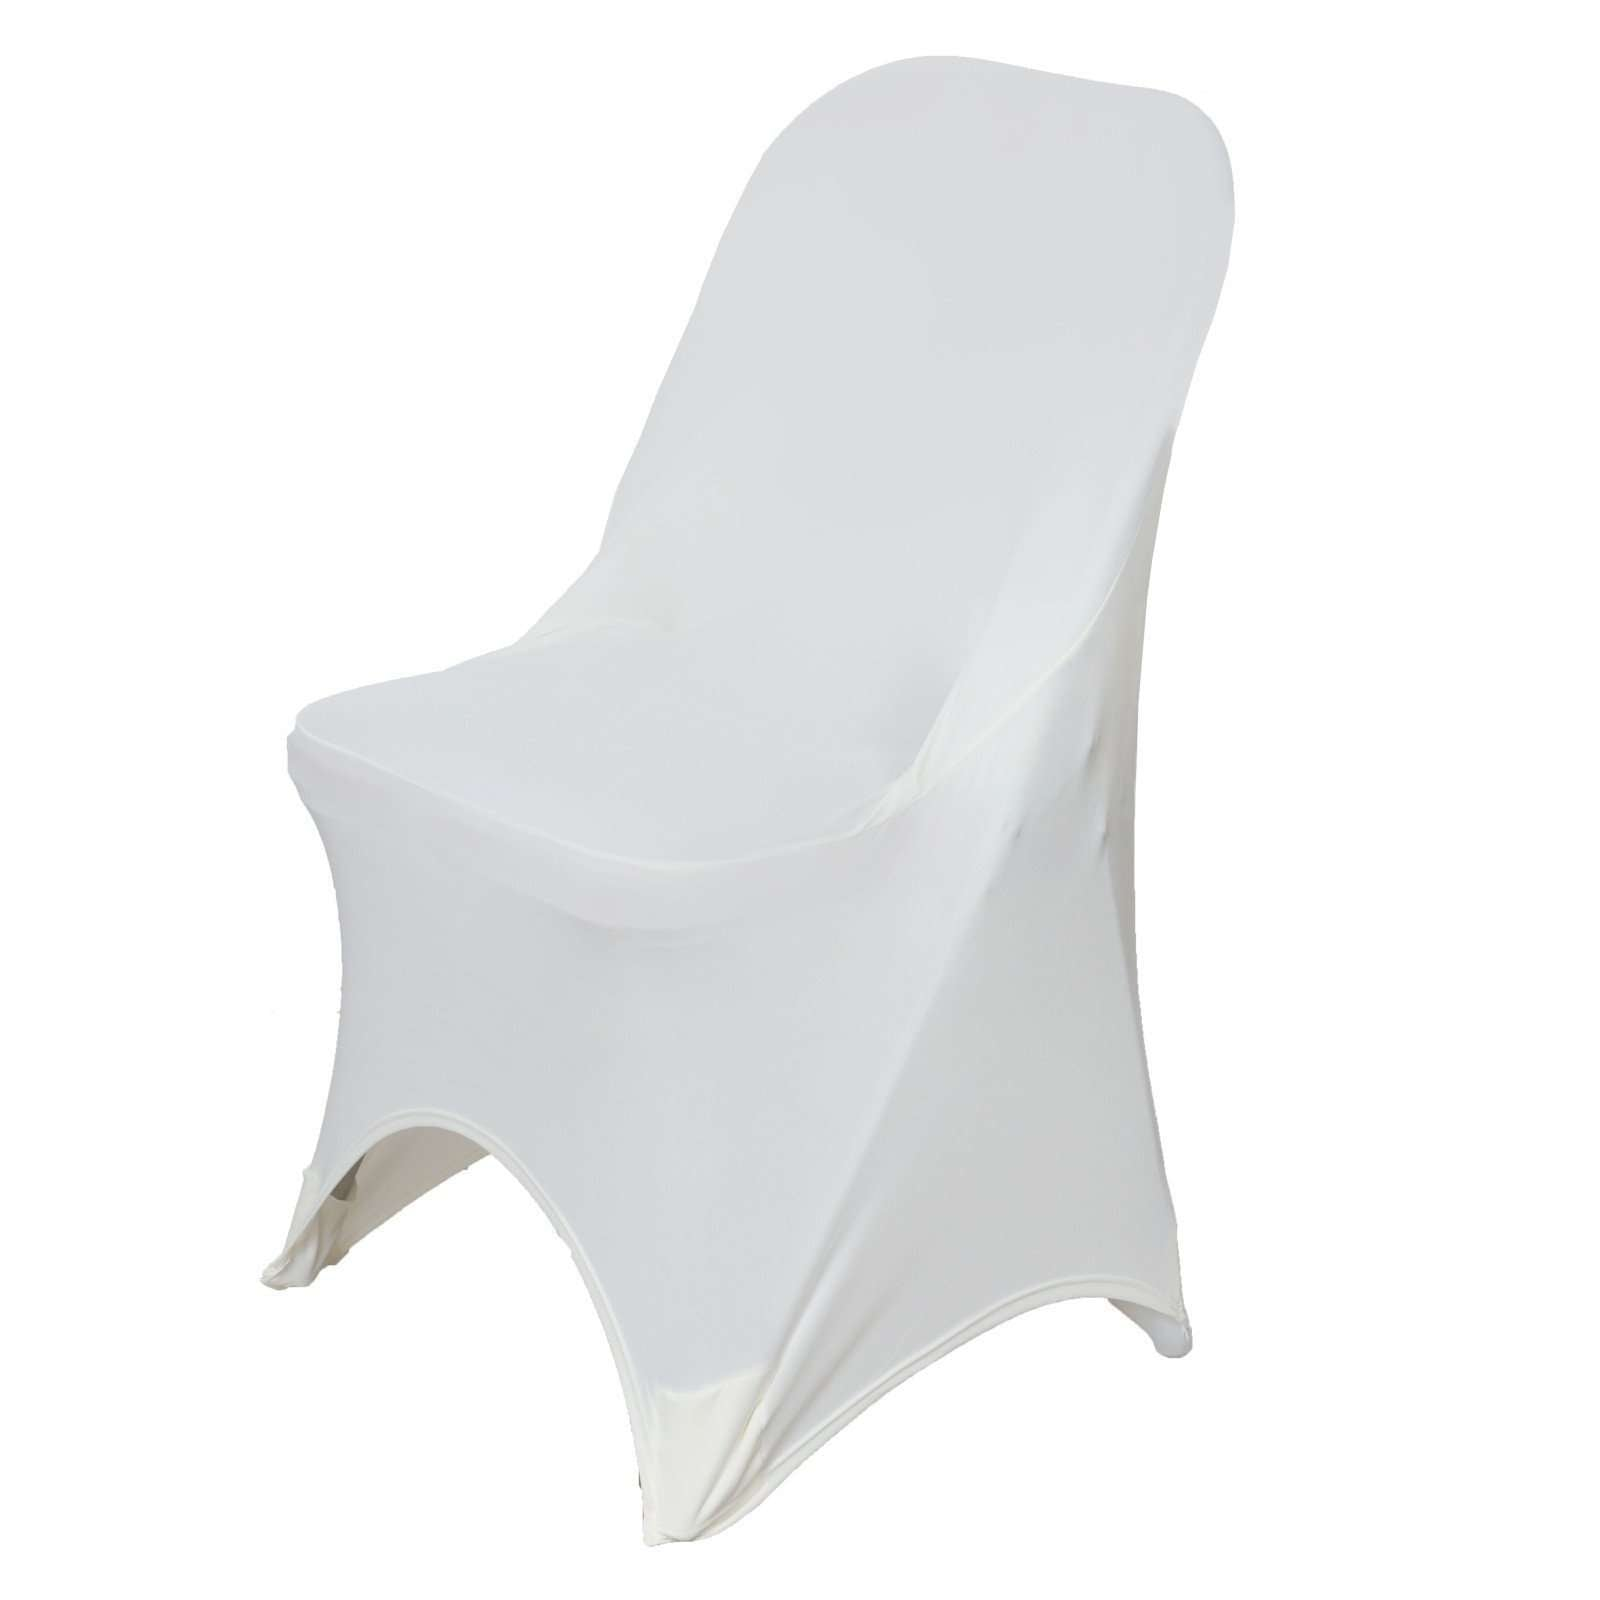 Pleasant Wholesale Ivory Spandex Stretch Folding Chair Cover Wedding Party Event Chaircoverfactory Gmtry Best Dining Table And Chair Ideas Images Gmtryco